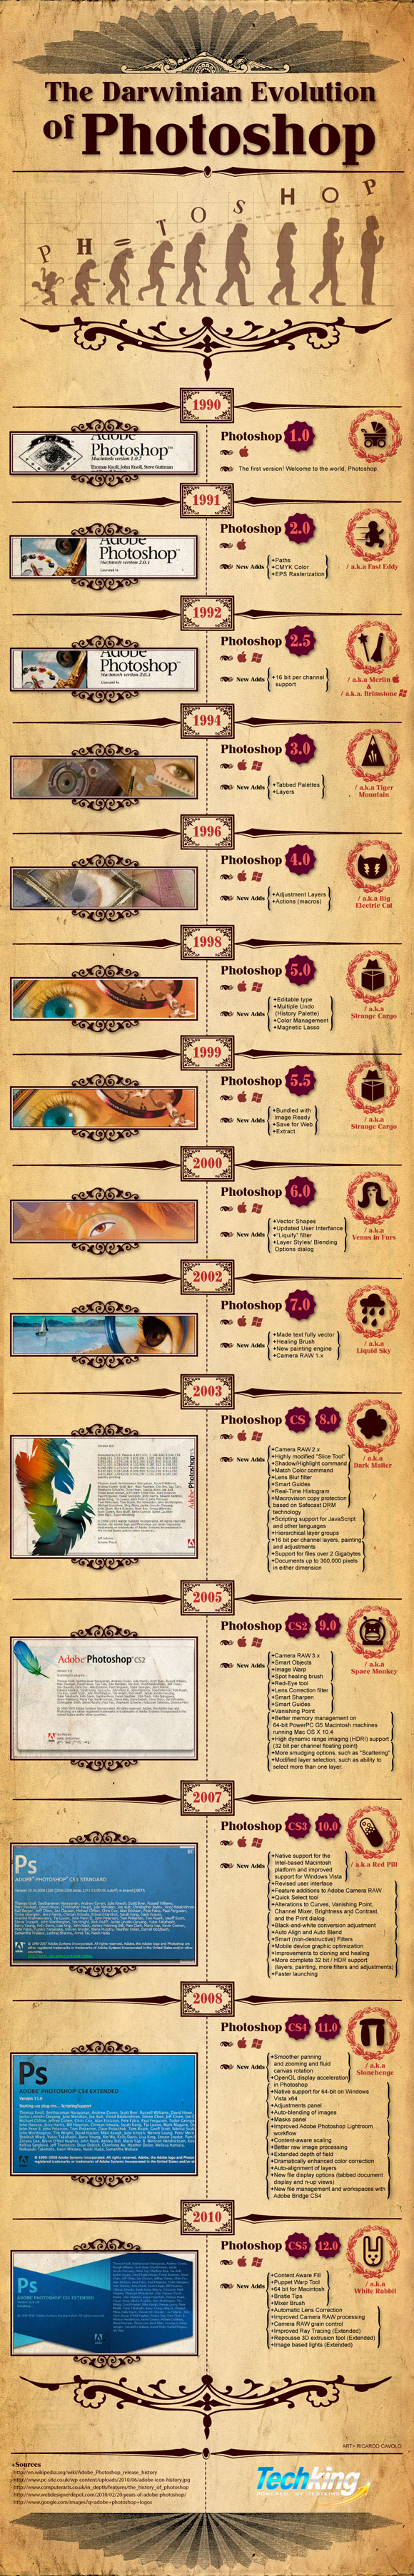 The-Darwinian-Evolution-Of-Photoshop-infographic